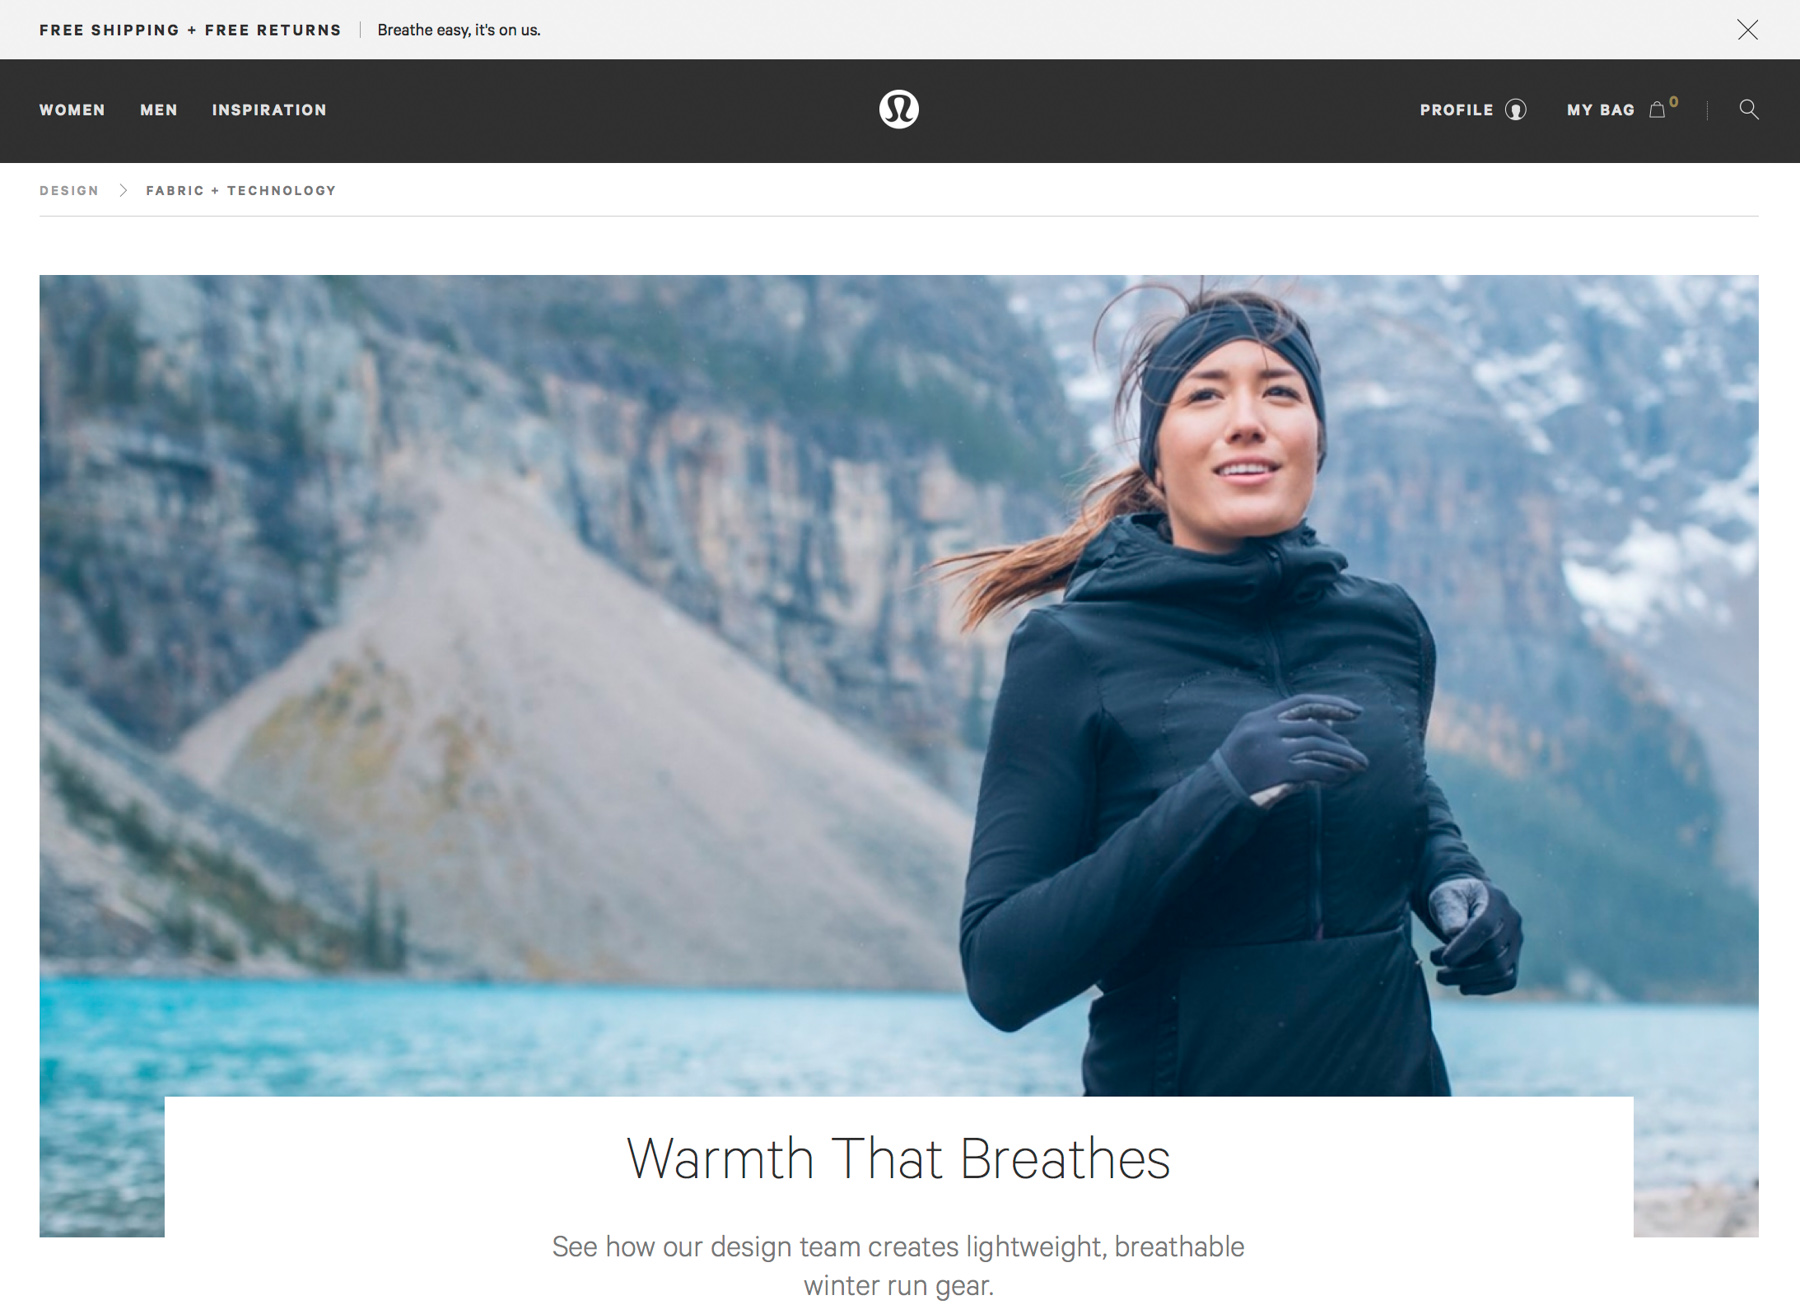 lululemon_running_campaign_photography_cold_mountains_image_28-2.jpg